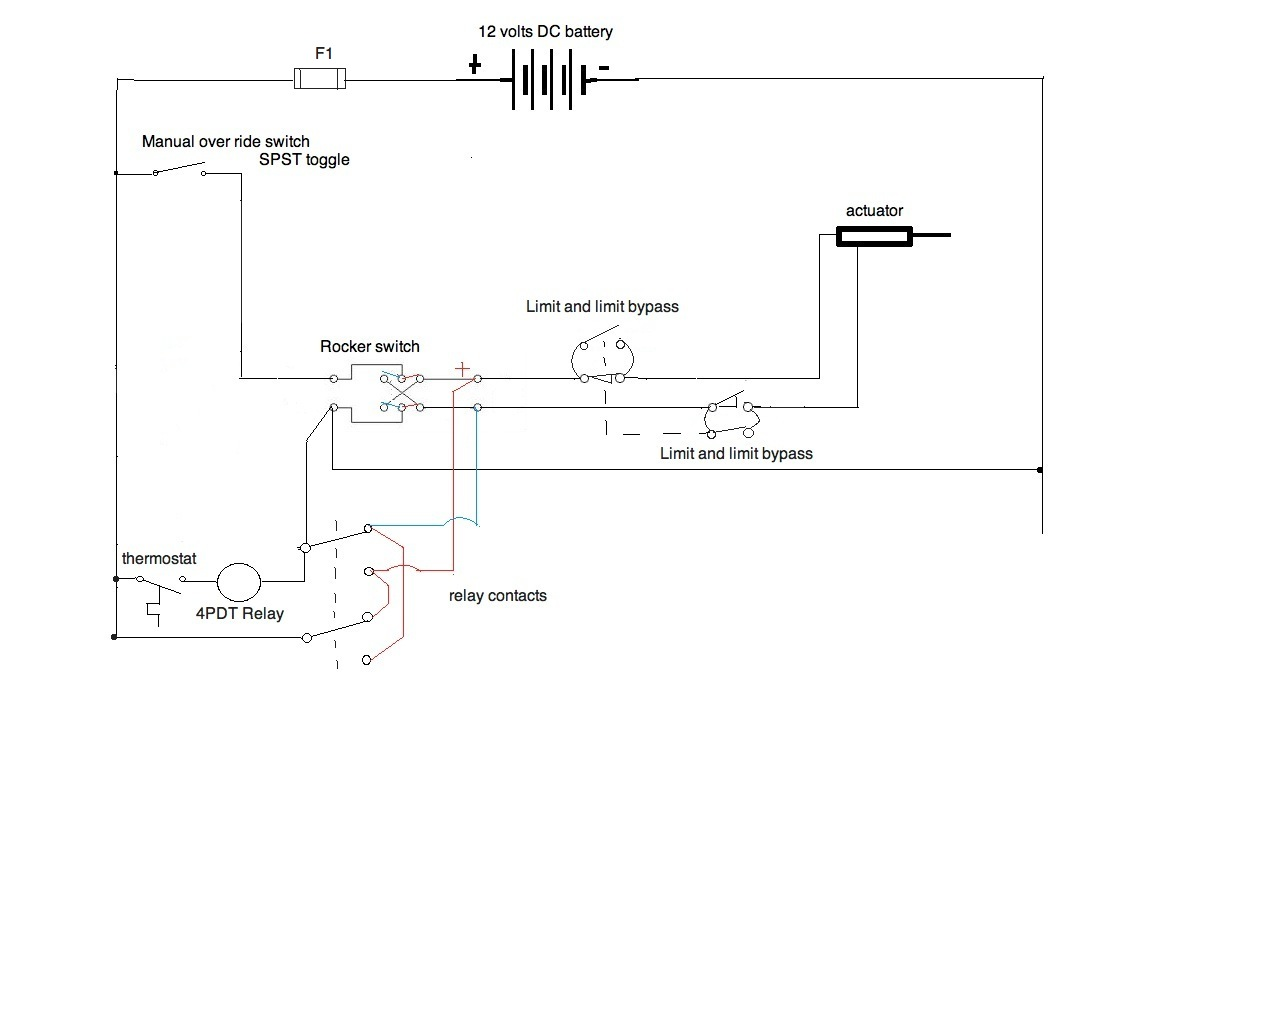 i need a wiring diagram for a 12v application. all components are ... motor limit switch wiring diagram 12v olt  justanswer